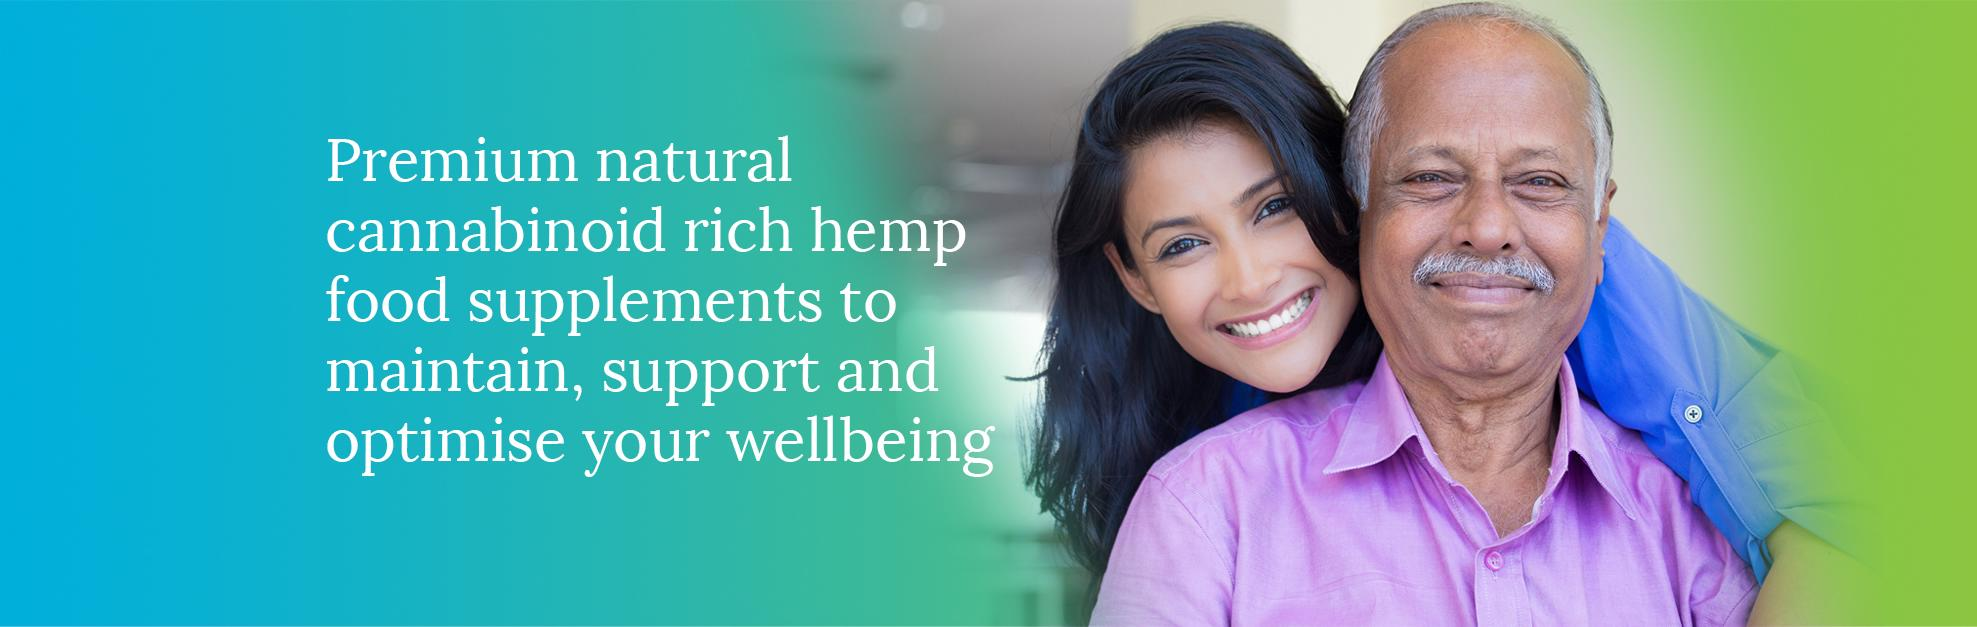 Premium Hemp Food Supplements